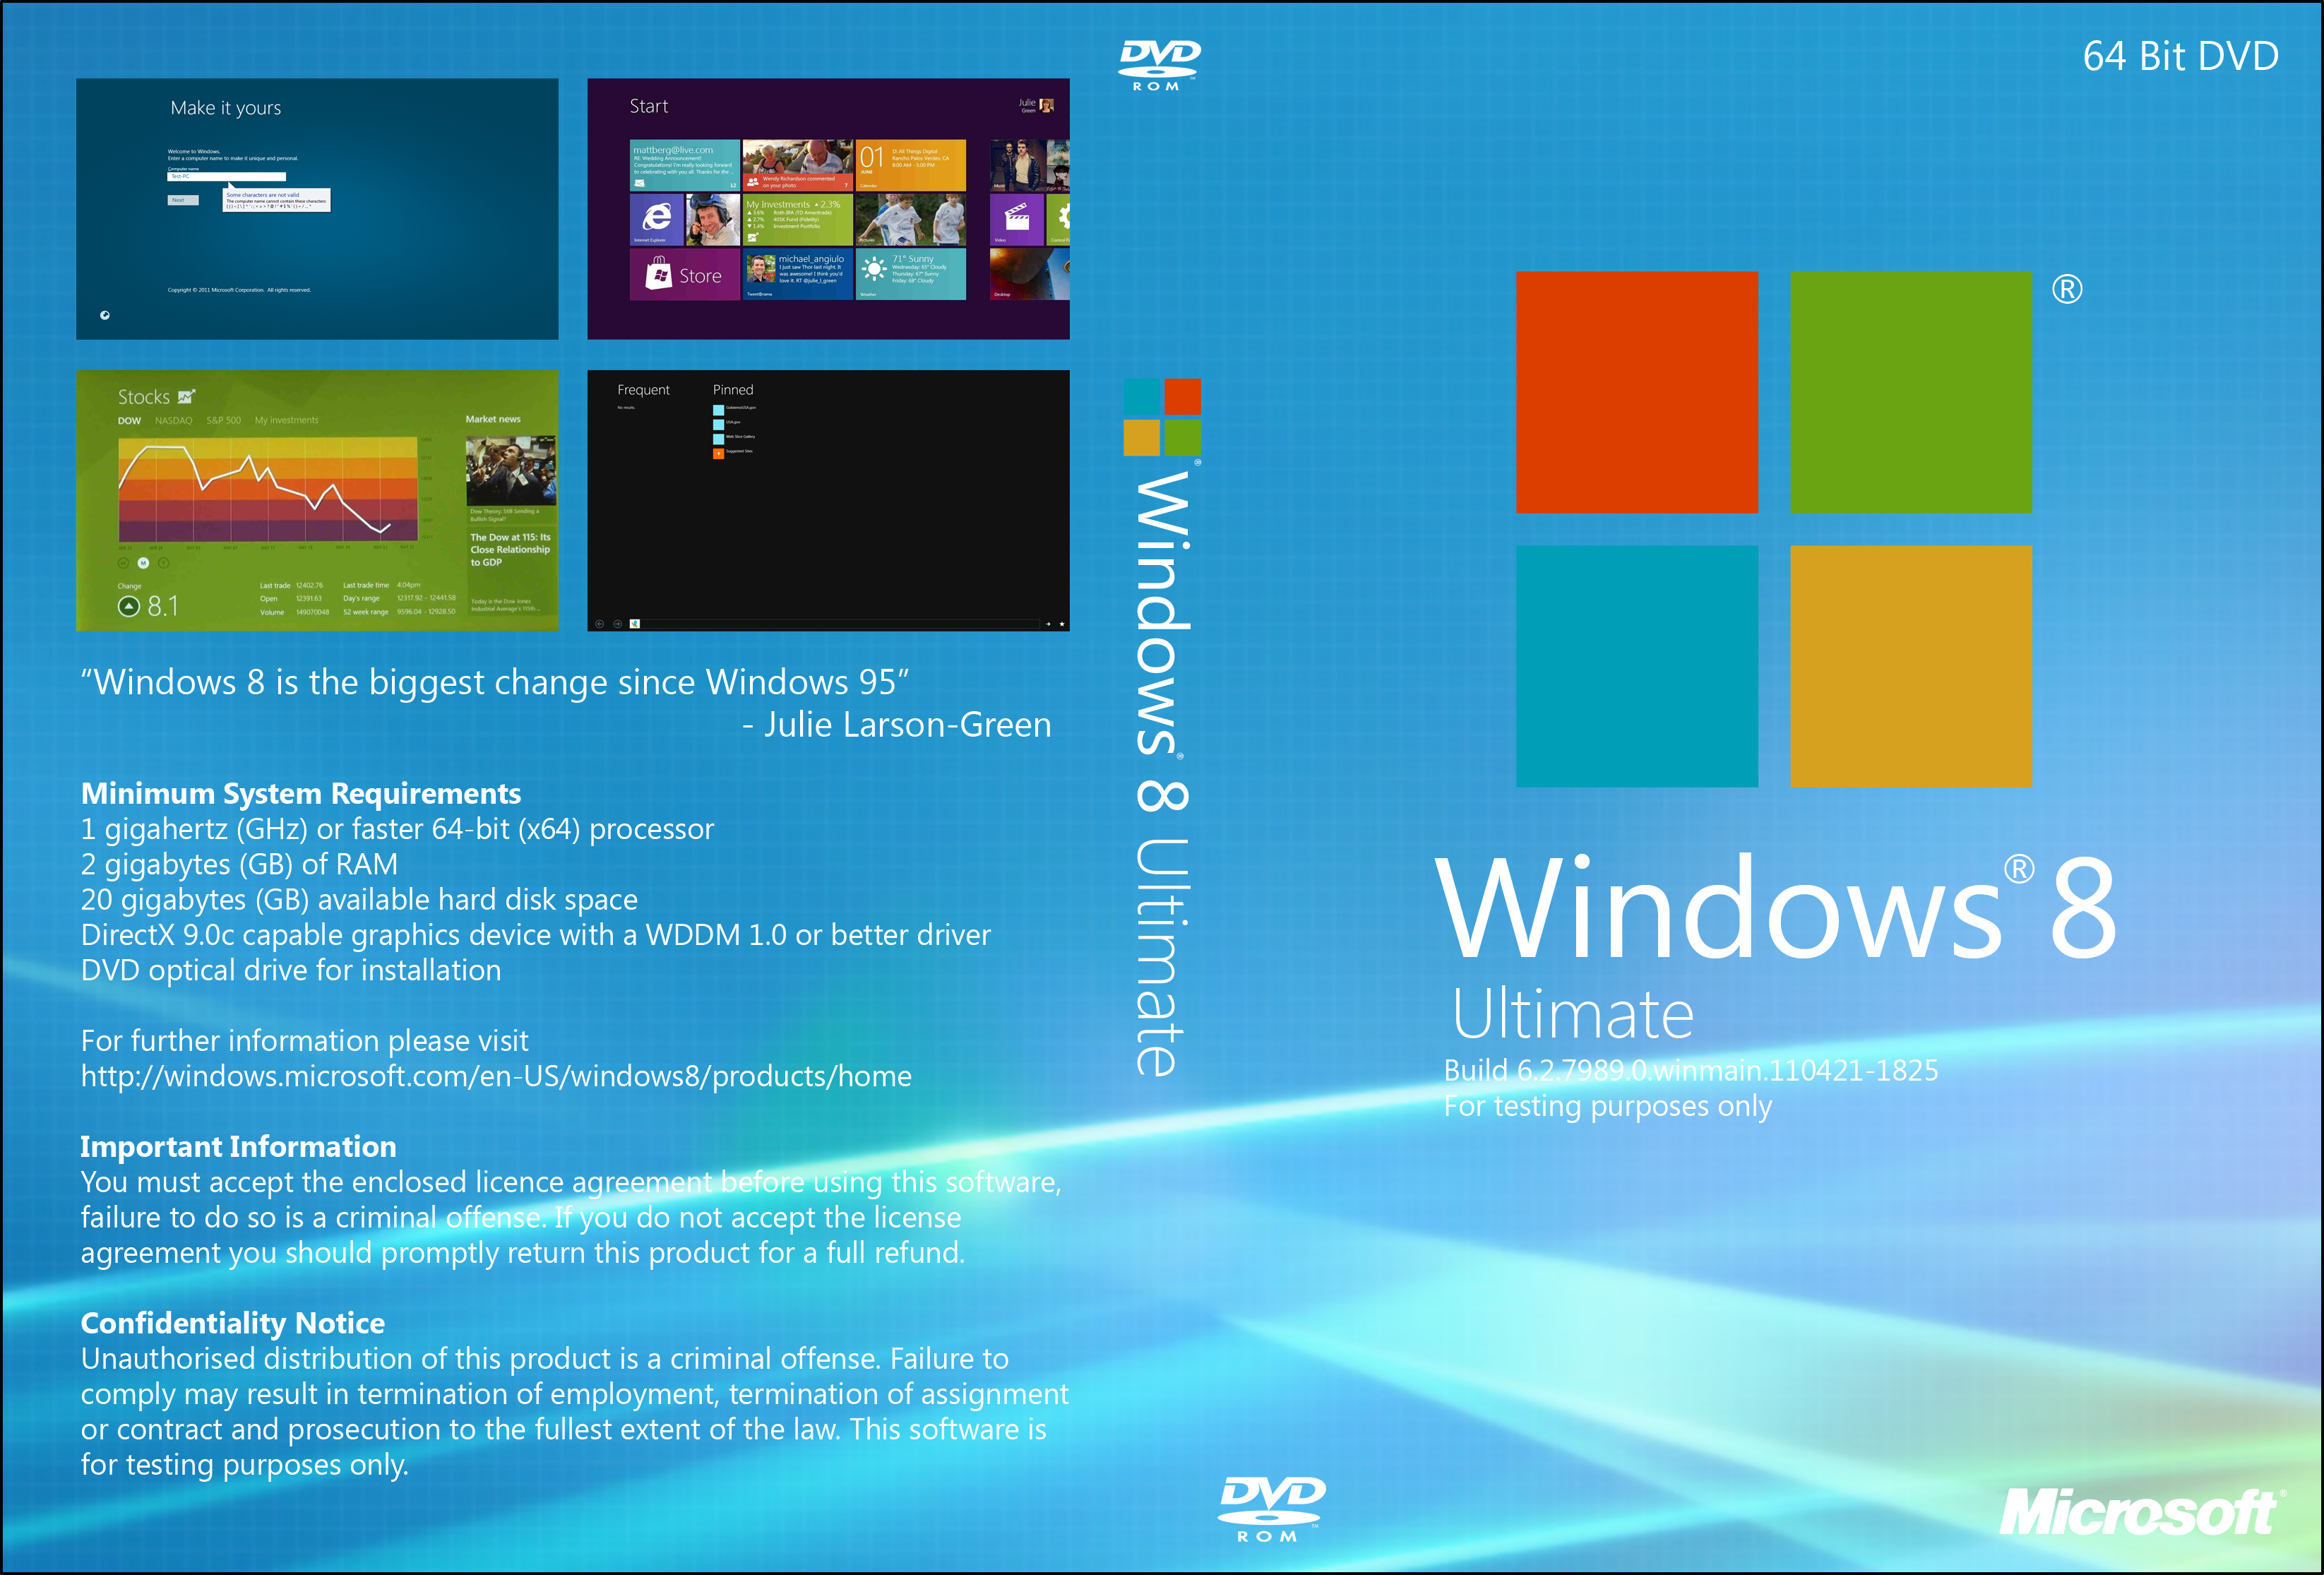 Windows 8 7989 DVD Cover by ben1066